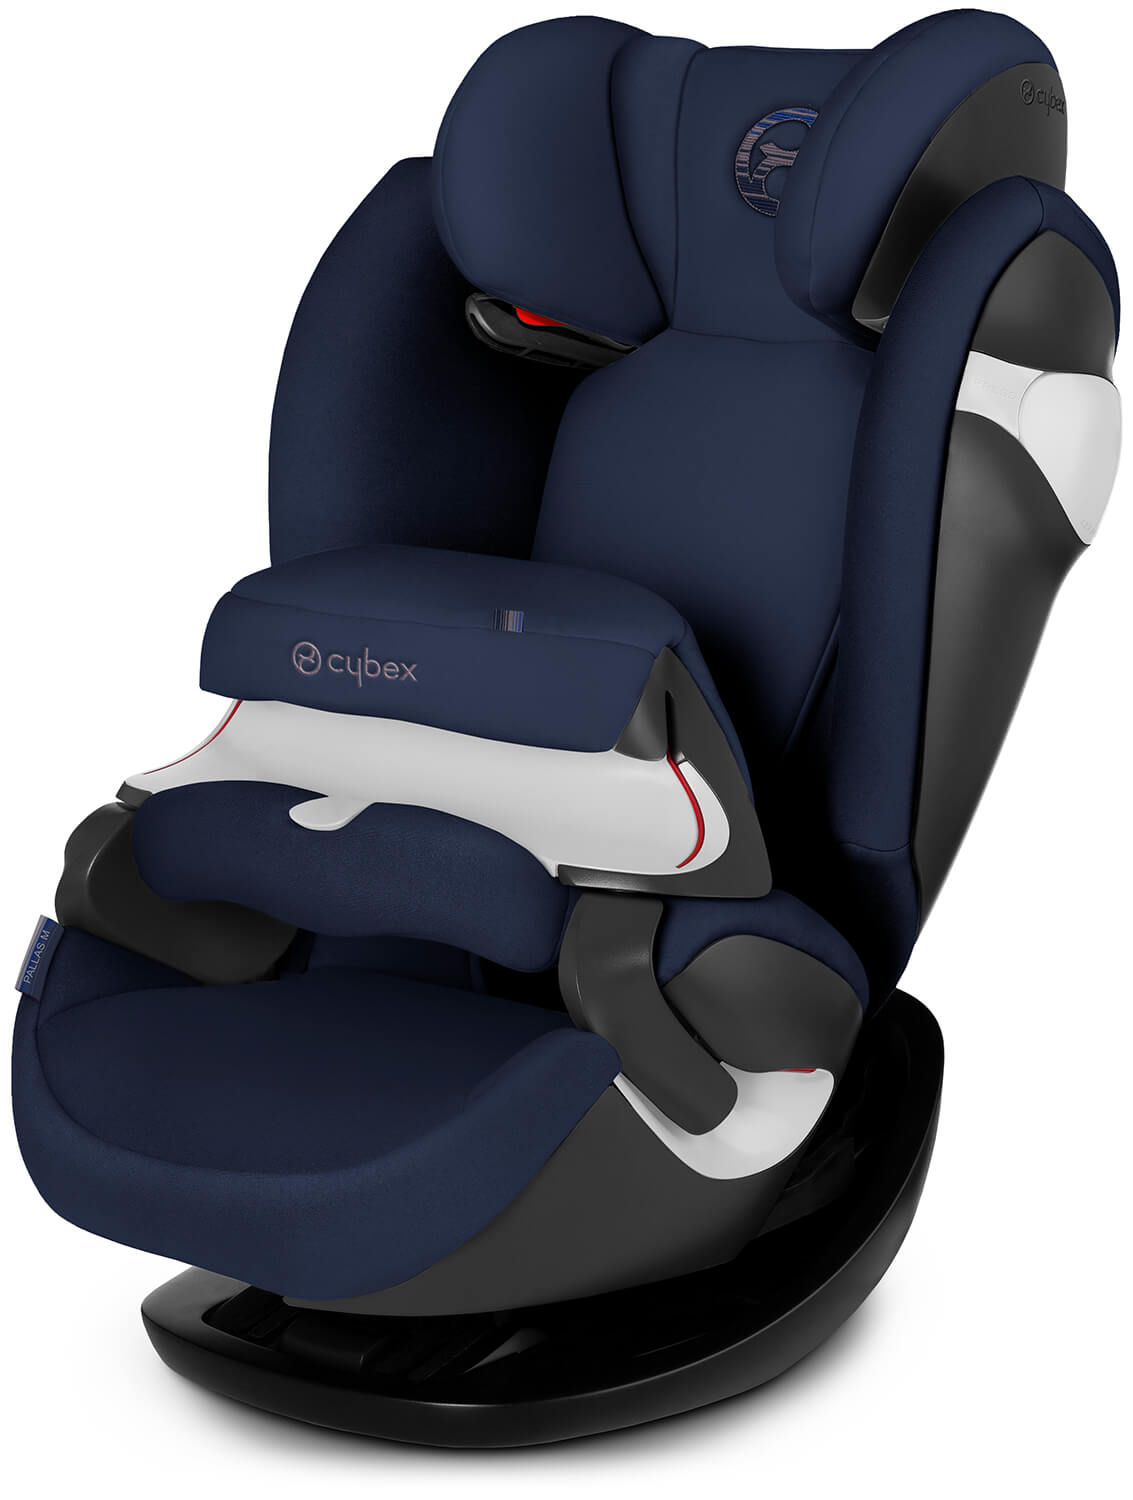 cybex pallas m denim blue child car seat 2018. Black Bedroom Furniture Sets. Home Design Ideas